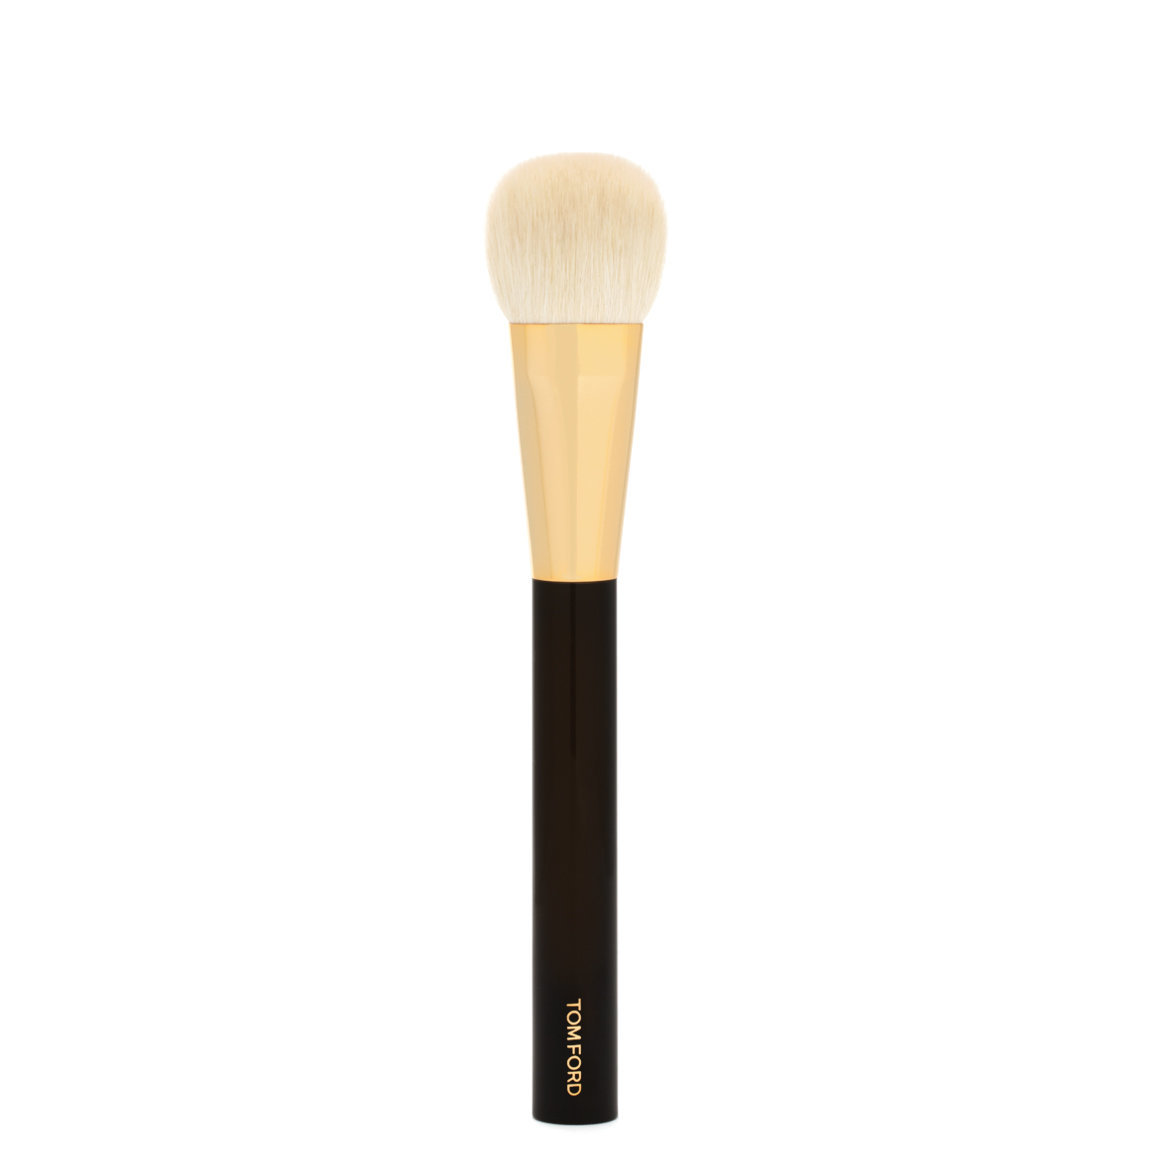 TOM FORD Cream Foundation Brush 02 product smear.